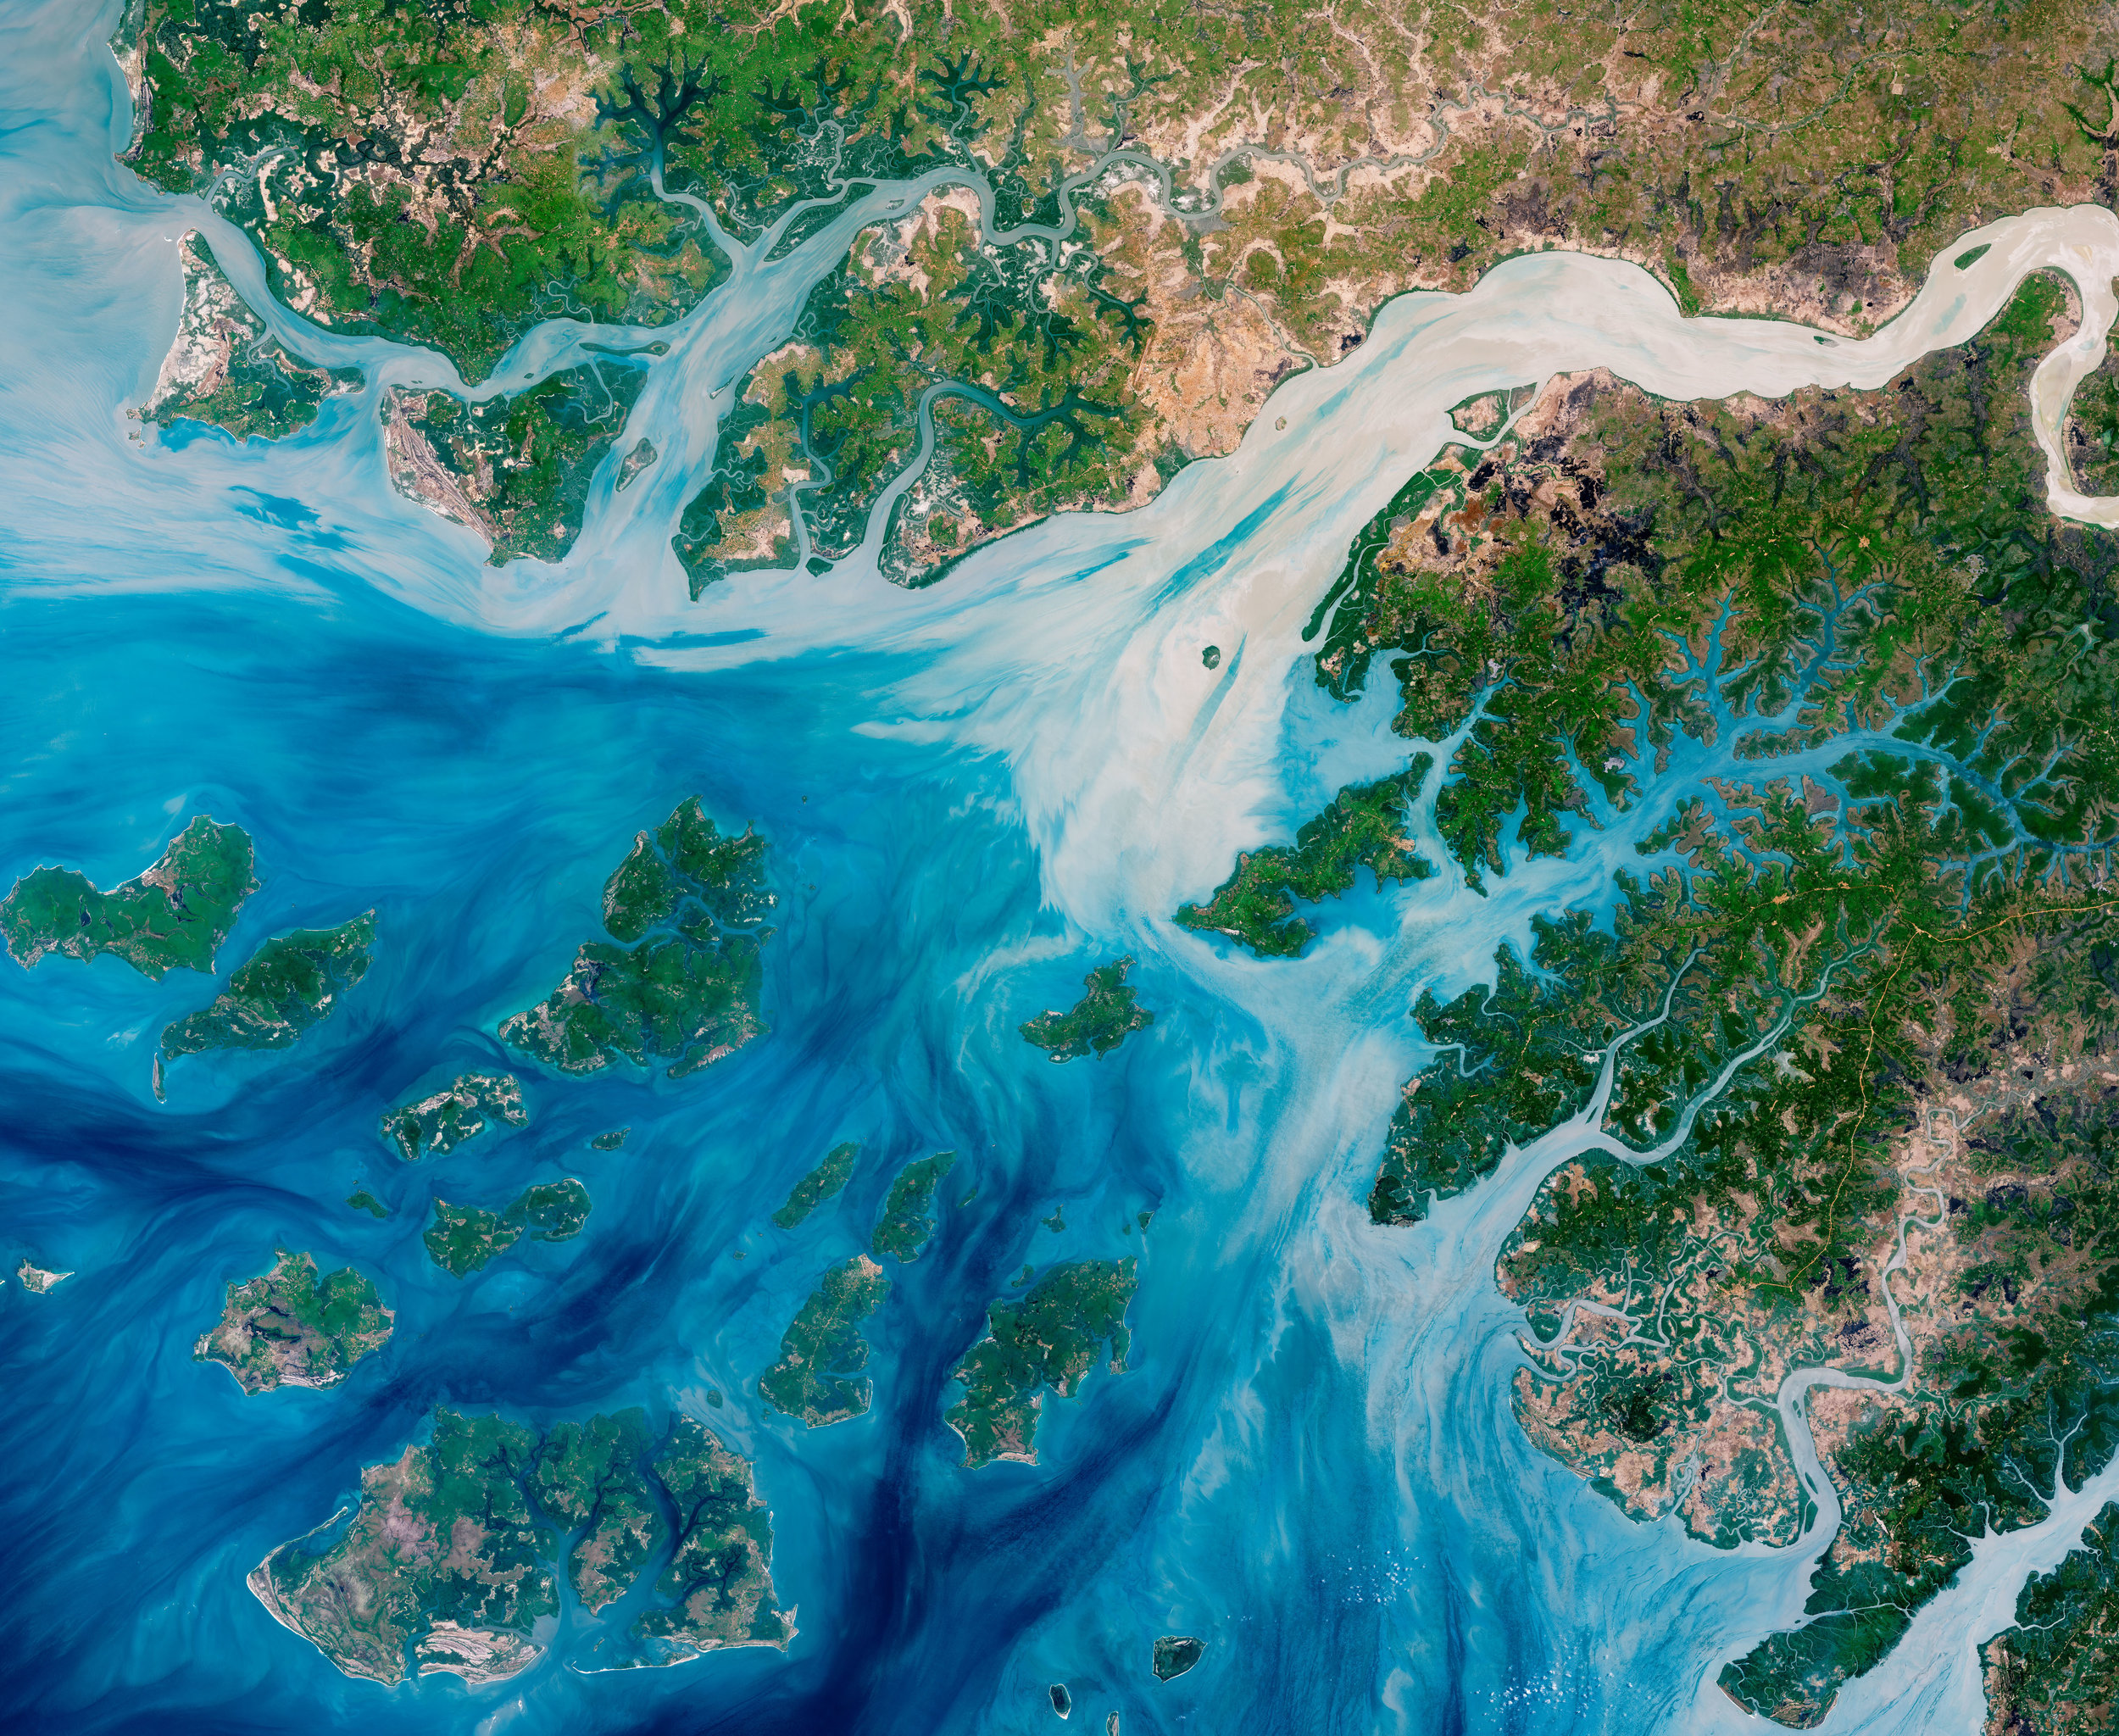 ACCOUNTING FOR NATURE'S VALUE ON A NATIONAL SCALE - Earth Observations is working to leverage the power of satellite data by partnering with governments to create standardized accounting systems that include the benefits of nature.